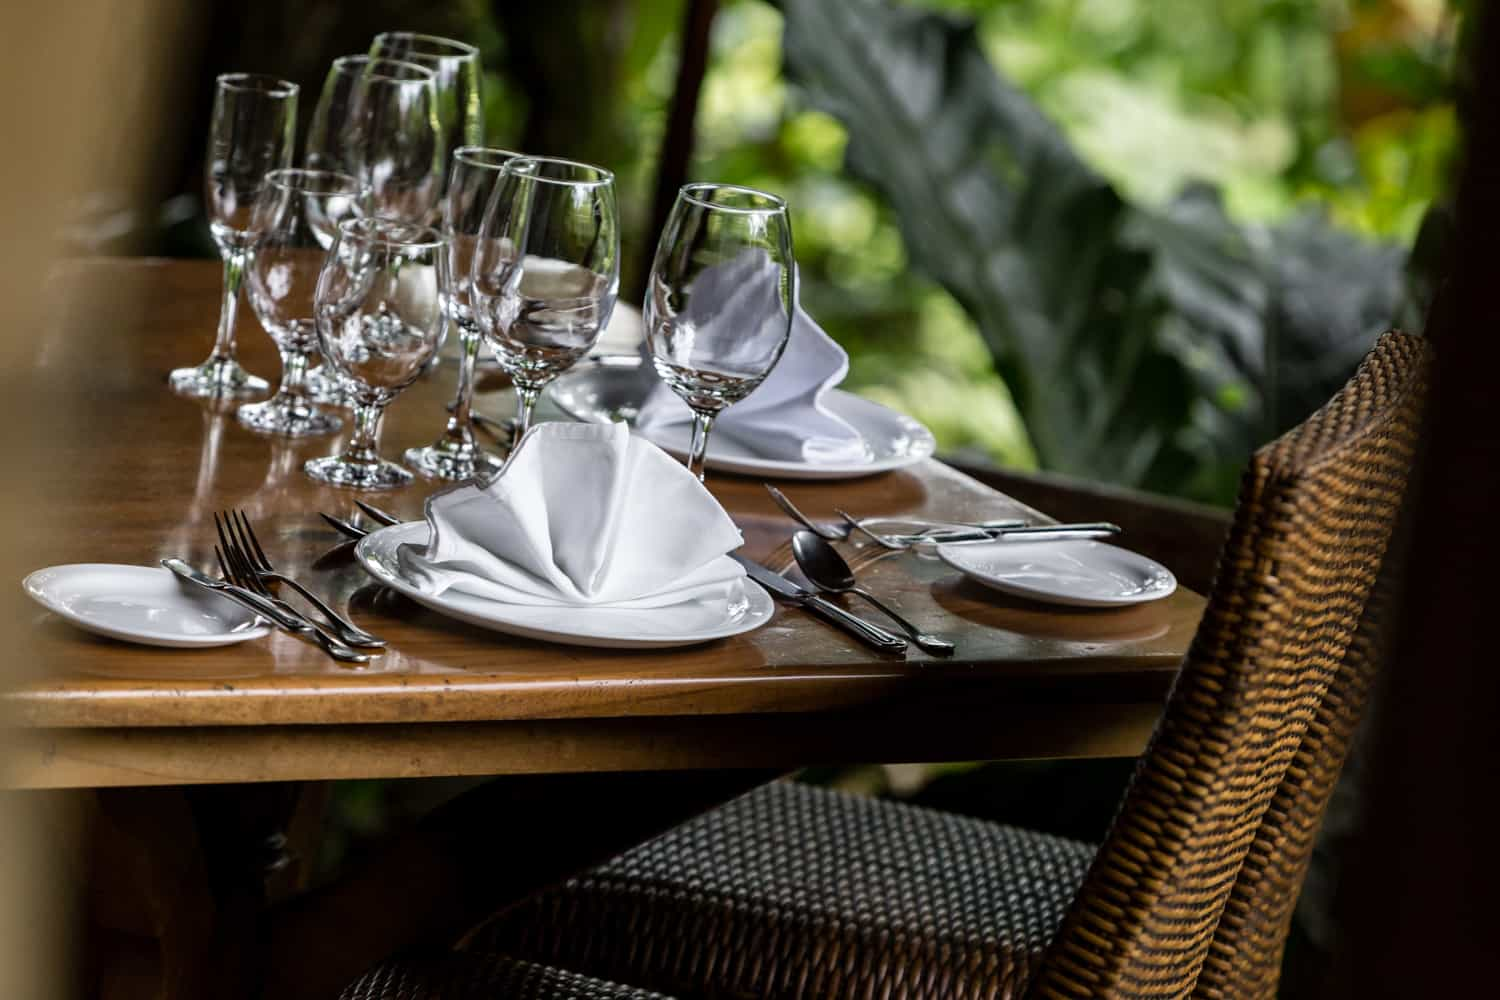 Bride and groom dinner table for intimate reception in rainforest restaurant.